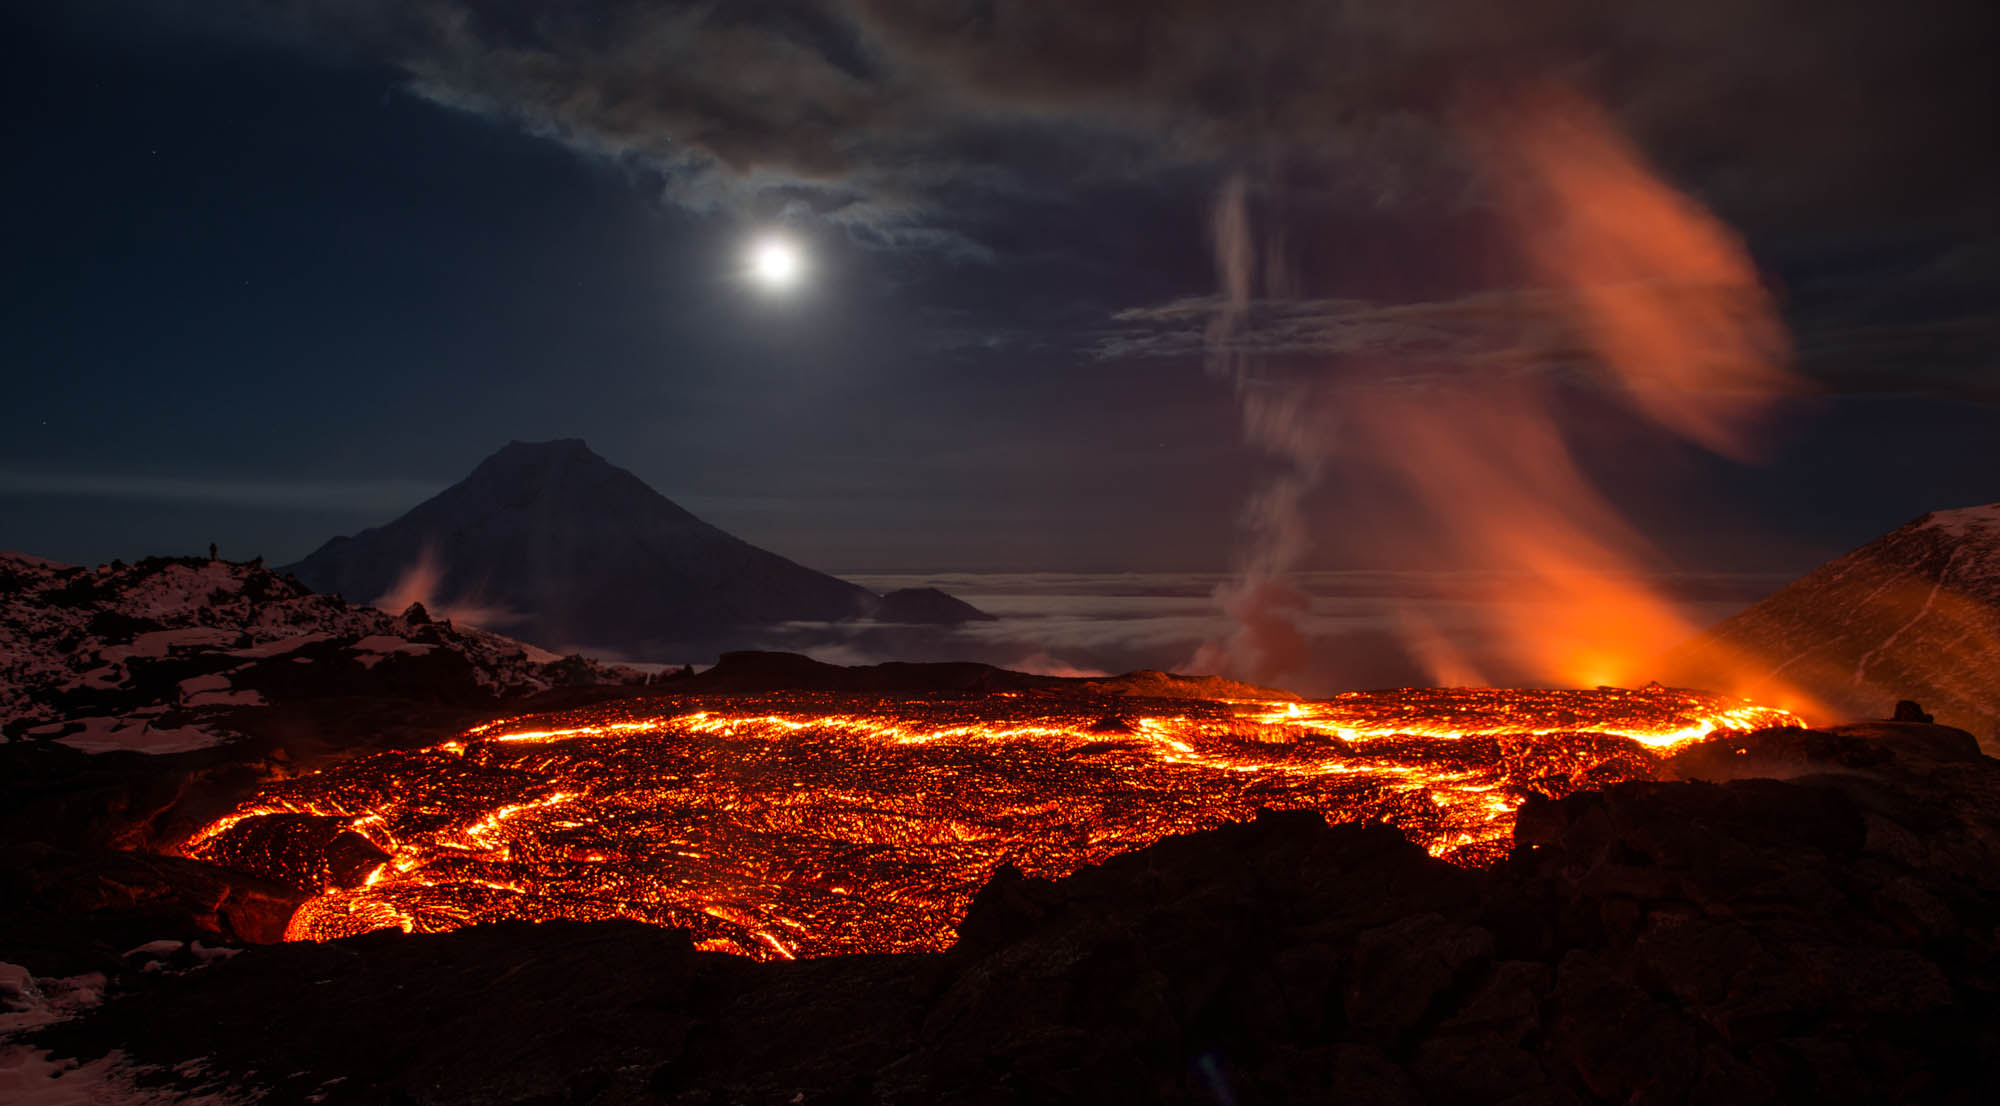 Volcano HD Wallpaper Background Images 2000x1106